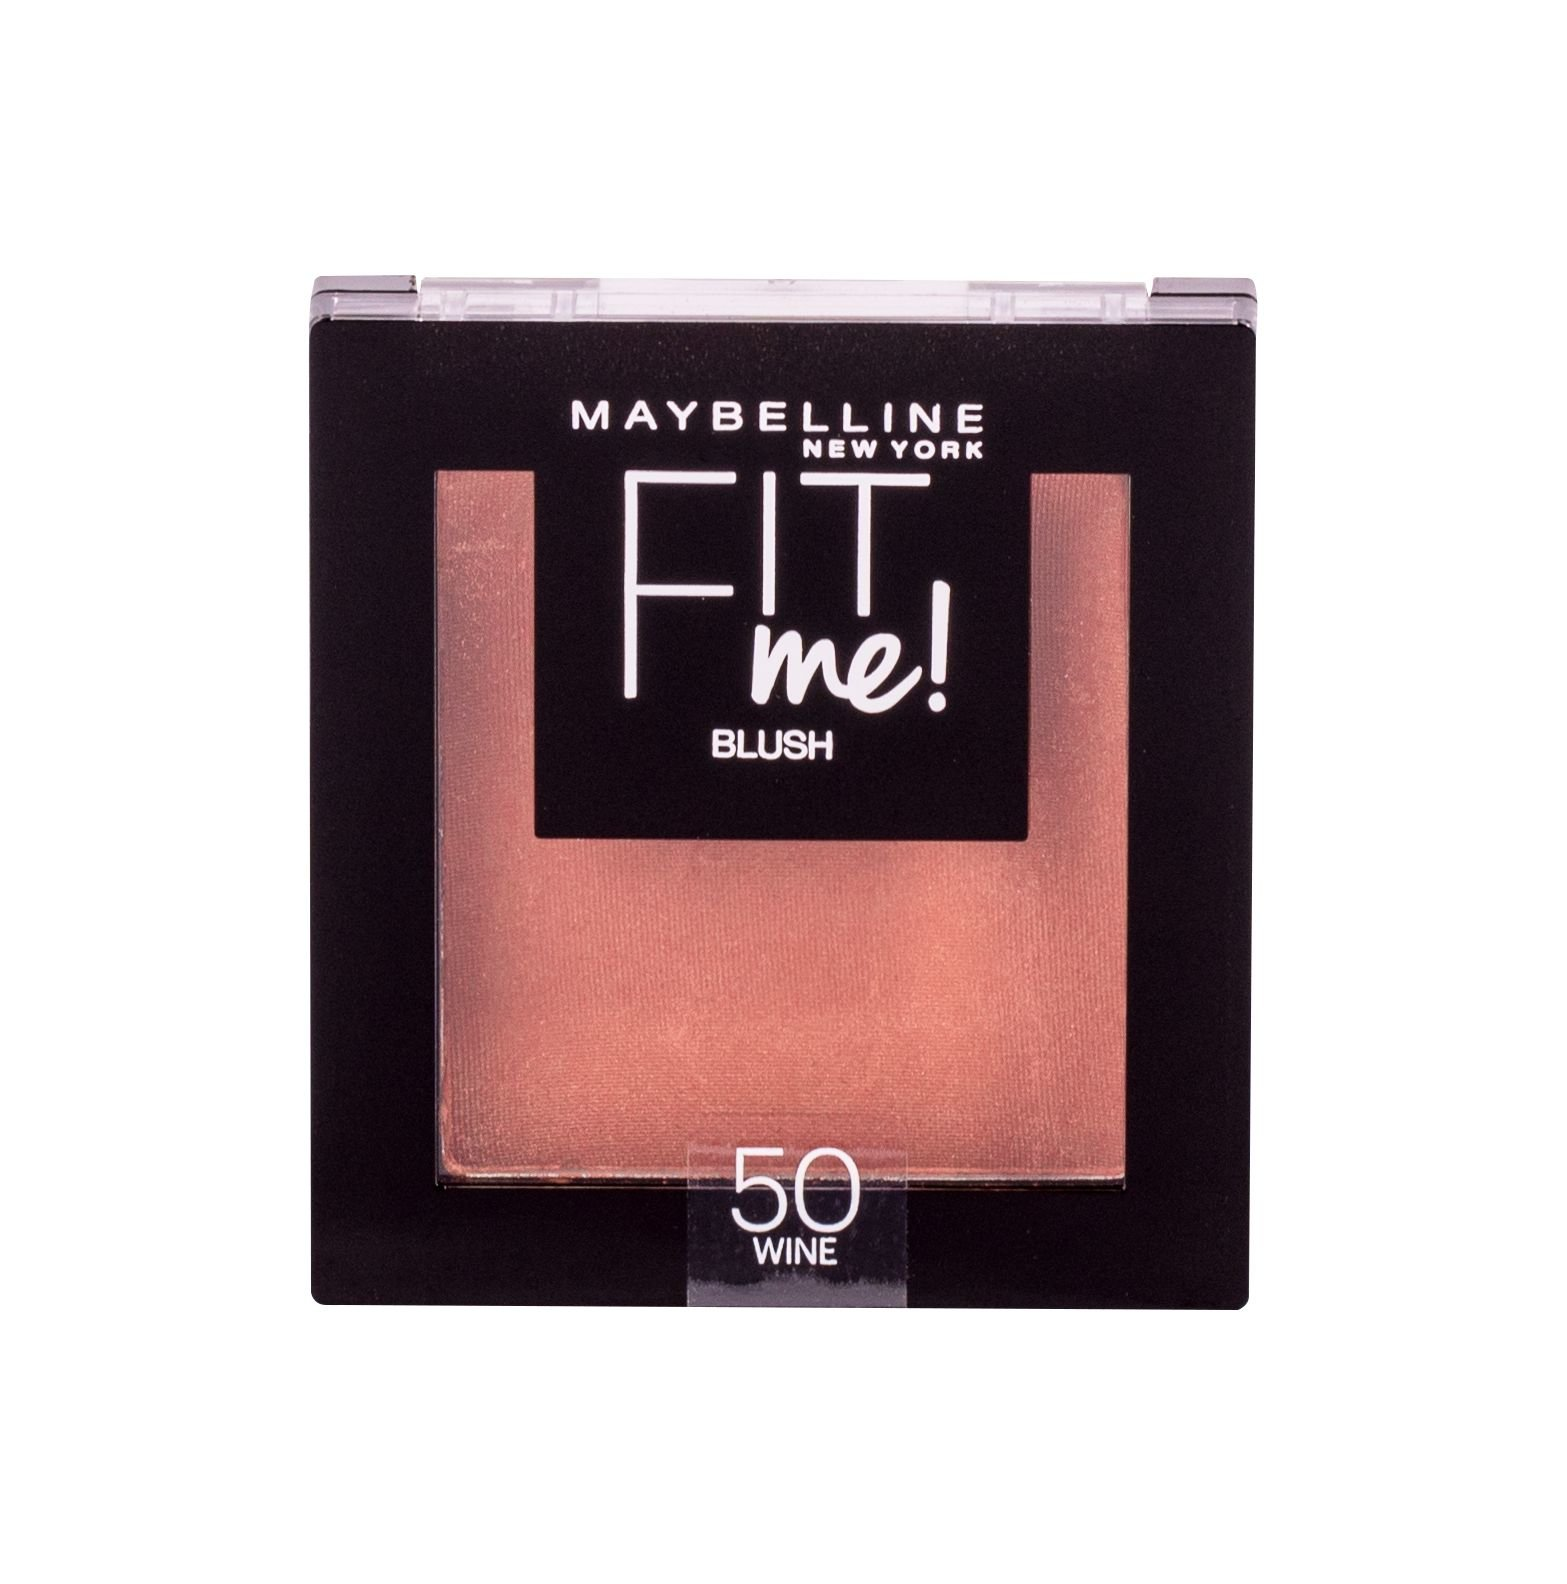 Maybelline Fit Me! Blush 5ml 50 Wine